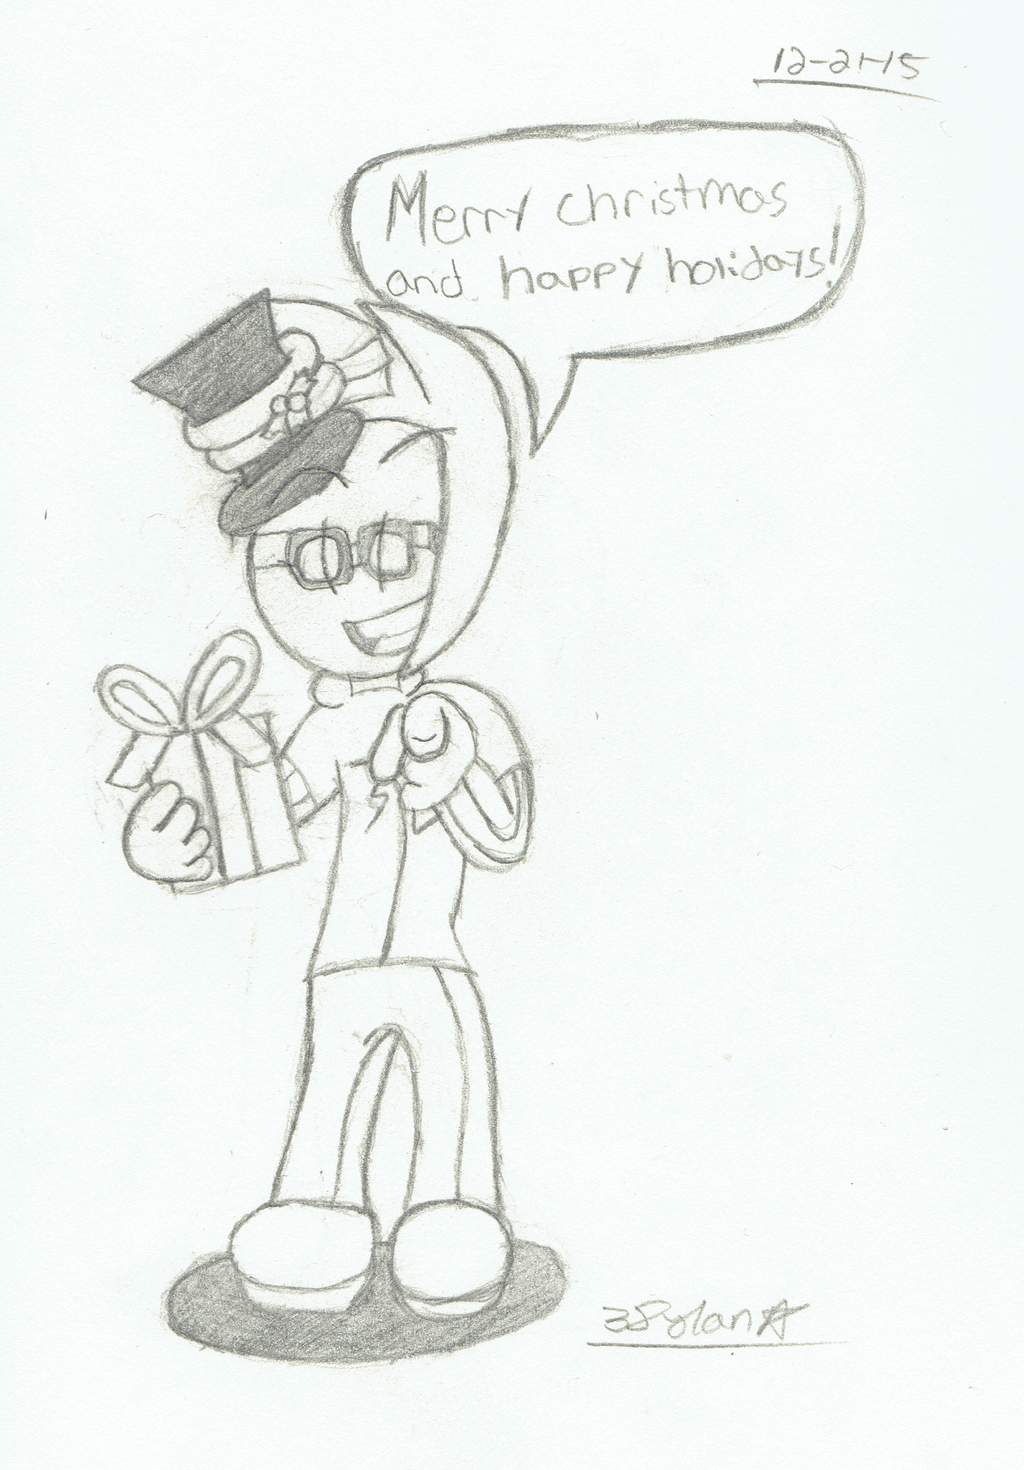 Merry Christmas and Happy Holidays by 3DylanStar on DeviantArt